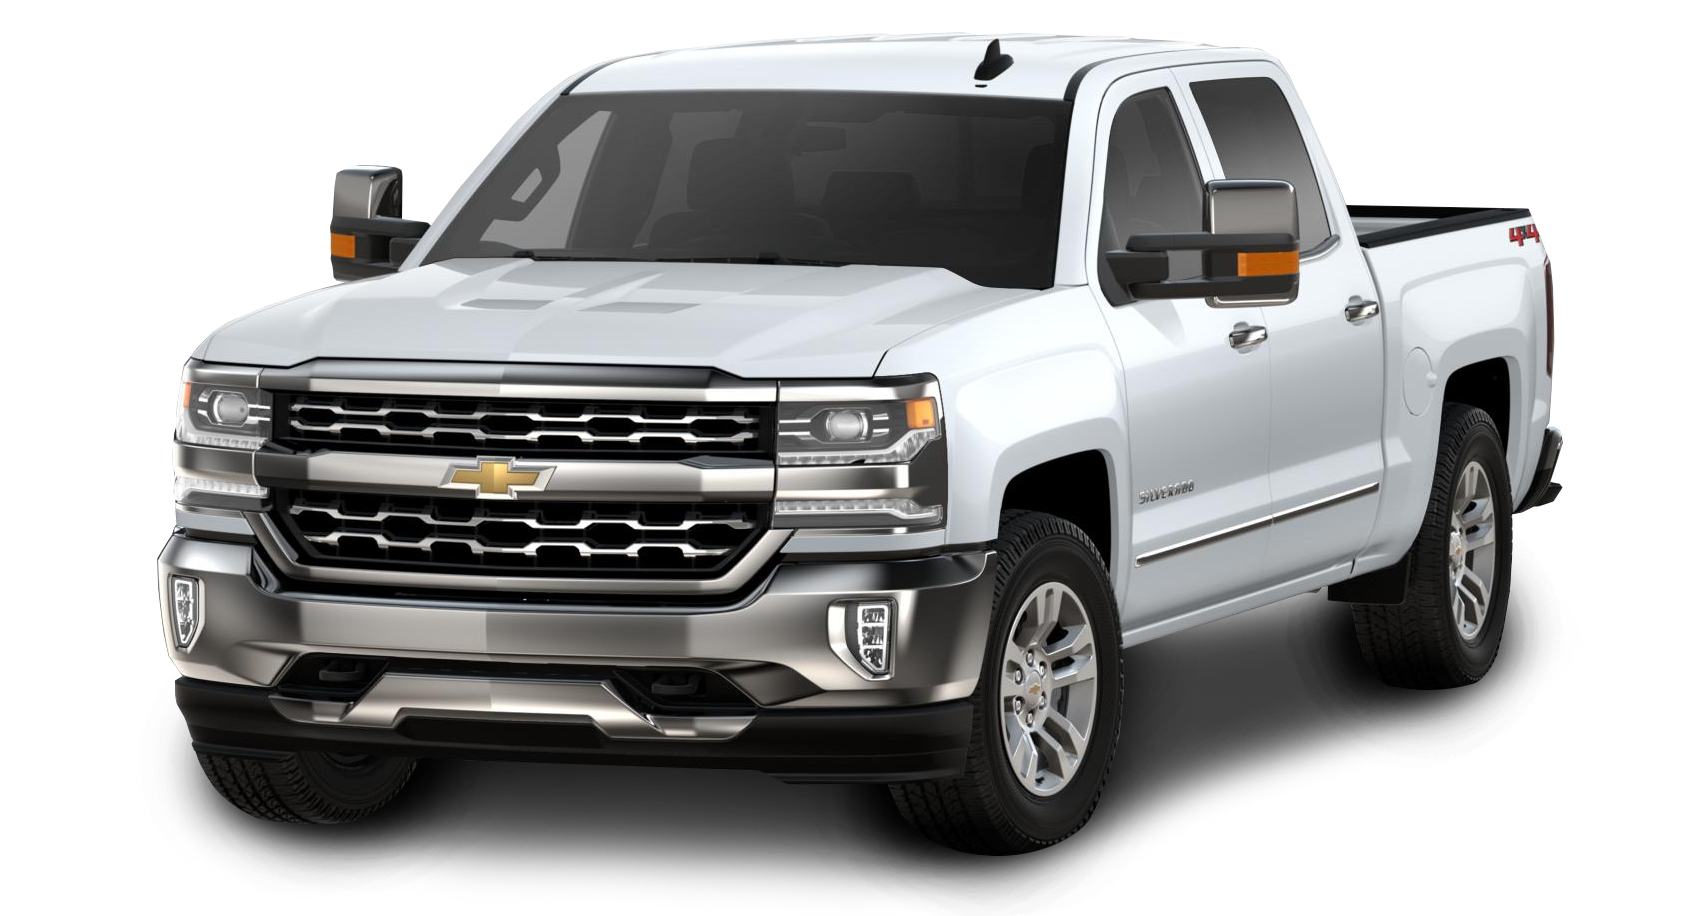 Since City Rent A Truck has served the greater Kansas City area offering a full line of vans and work trucks for rent and lease. From various sizes of box trucks, flatbeds/stake beds, to cargo vans and passenger vans, to a variety of pickups for hauling and towing, we have everything you'll need.